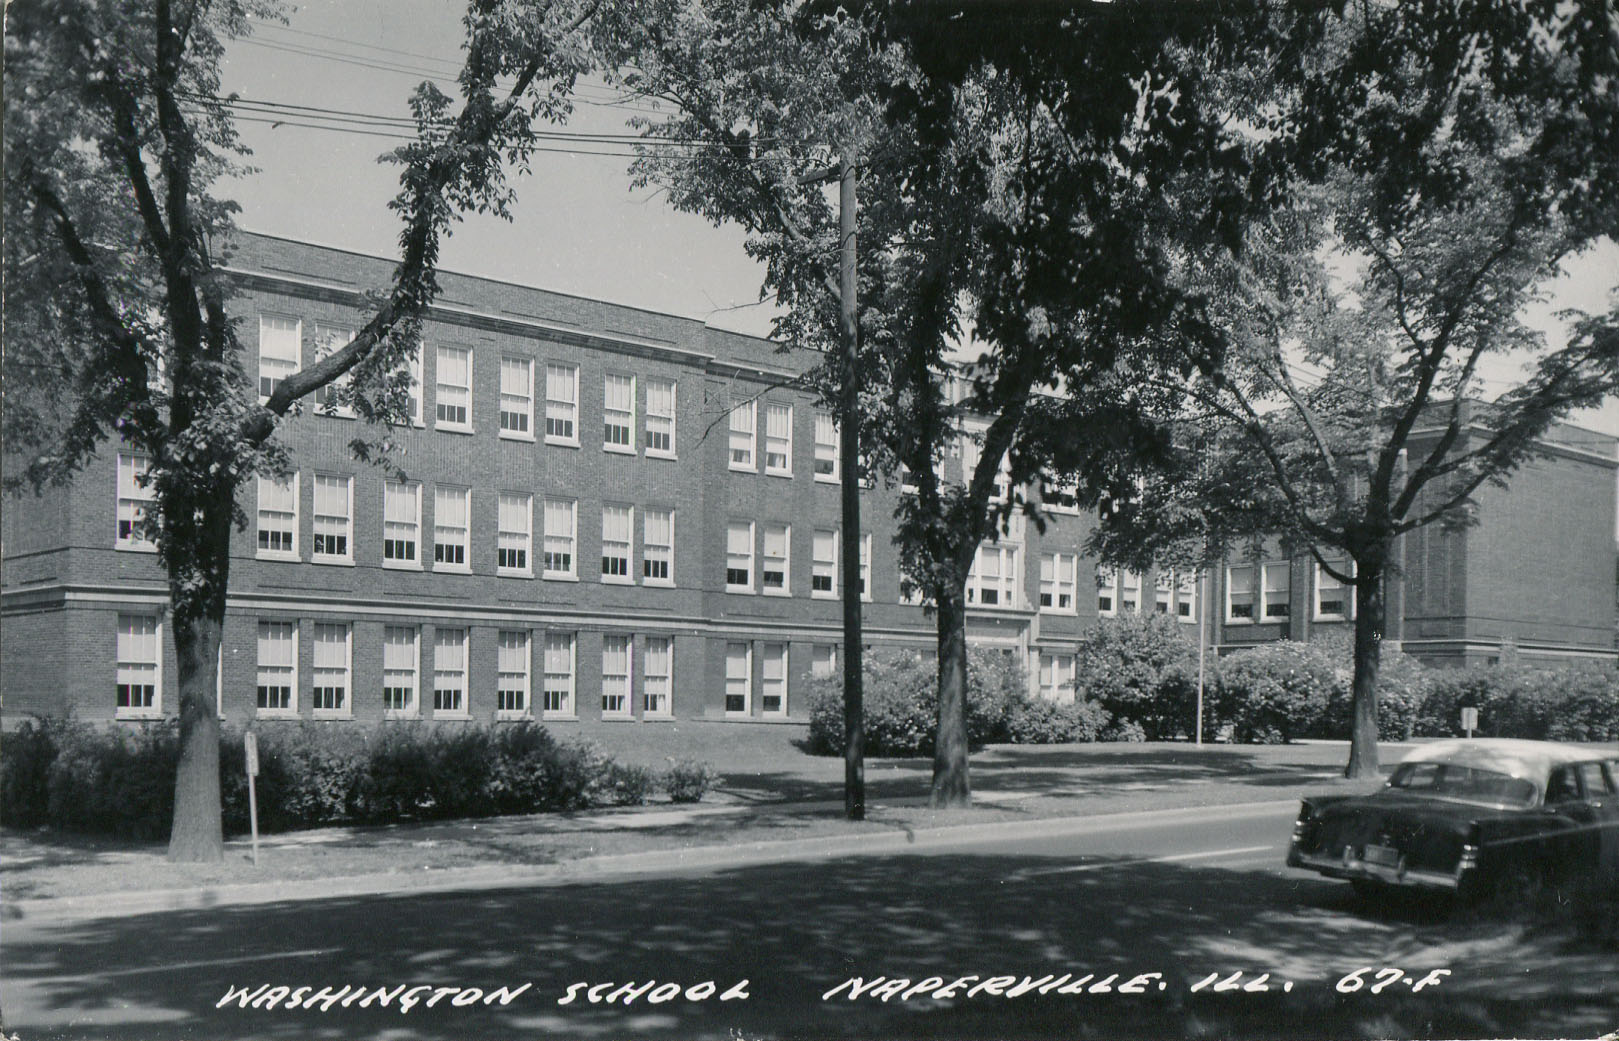 Washington School postcard